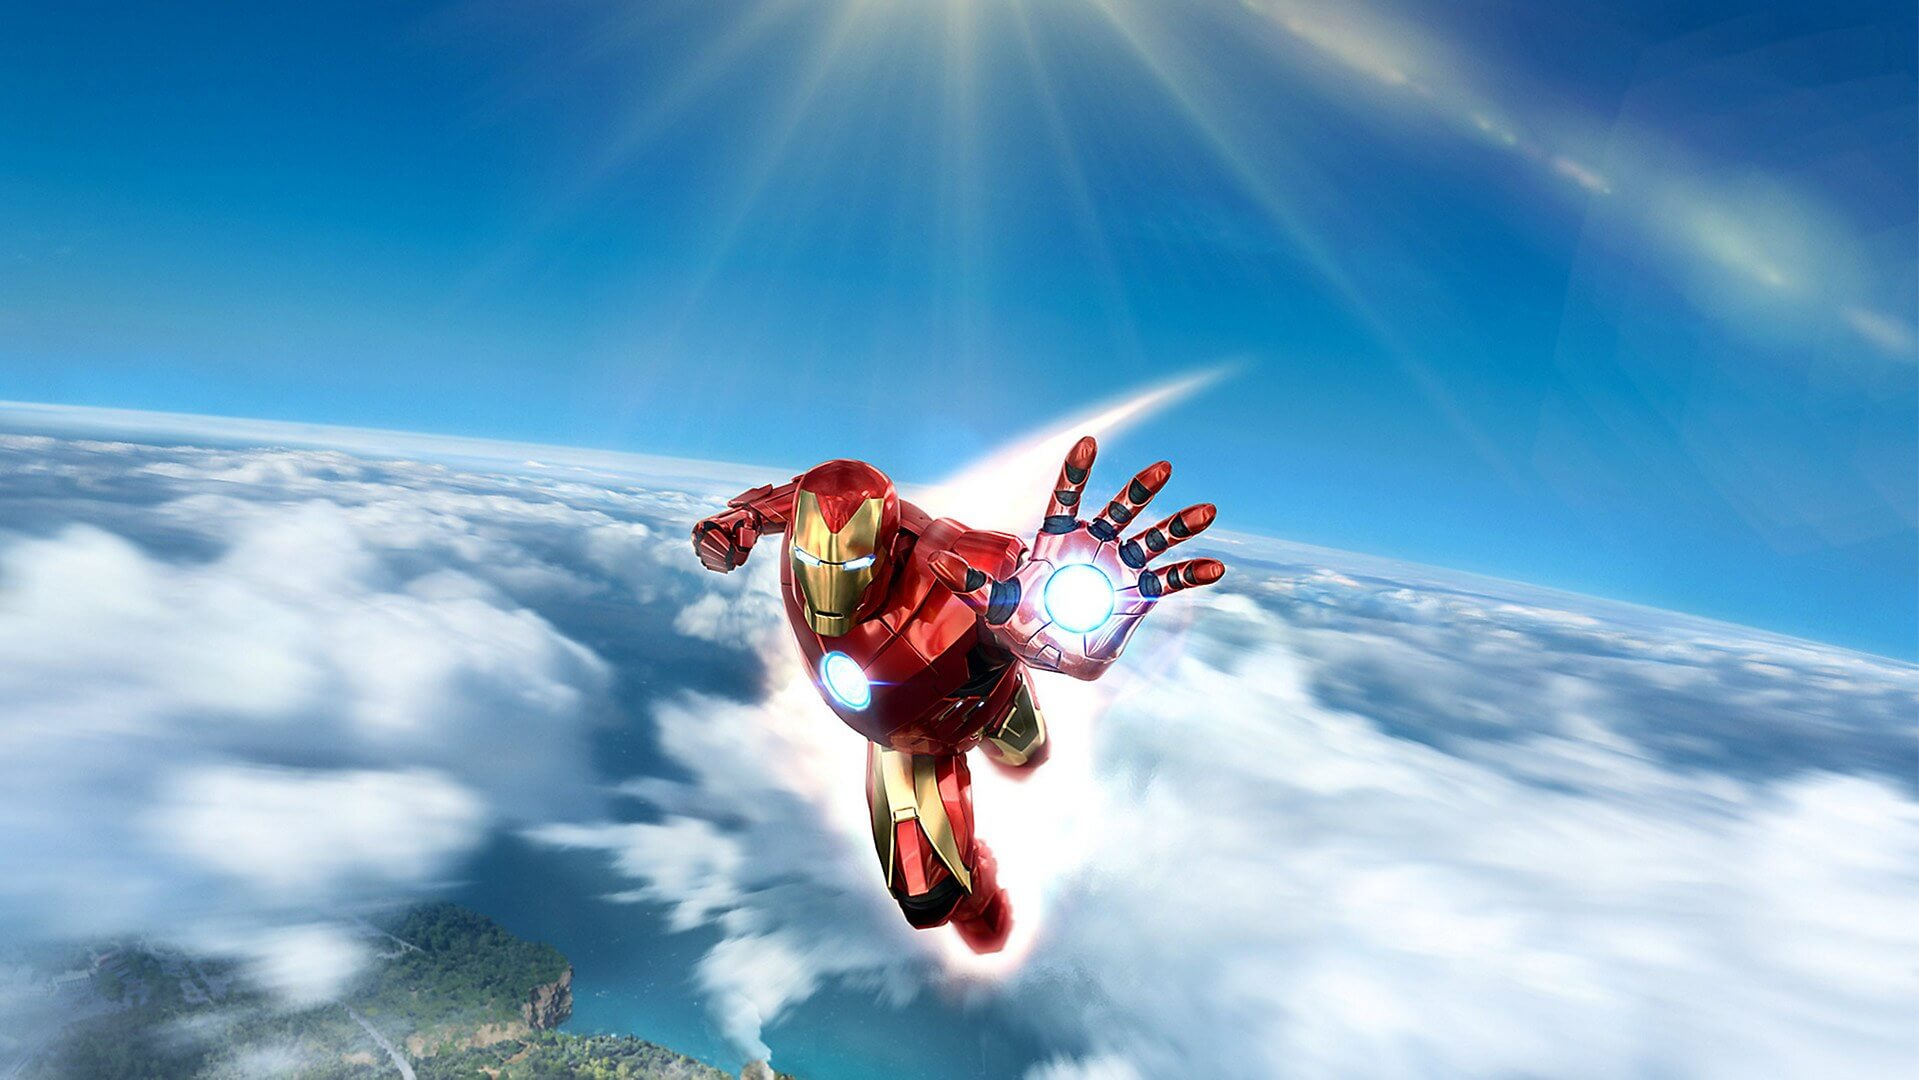 You can finally take to the skies in VR as Iron Man this Friday